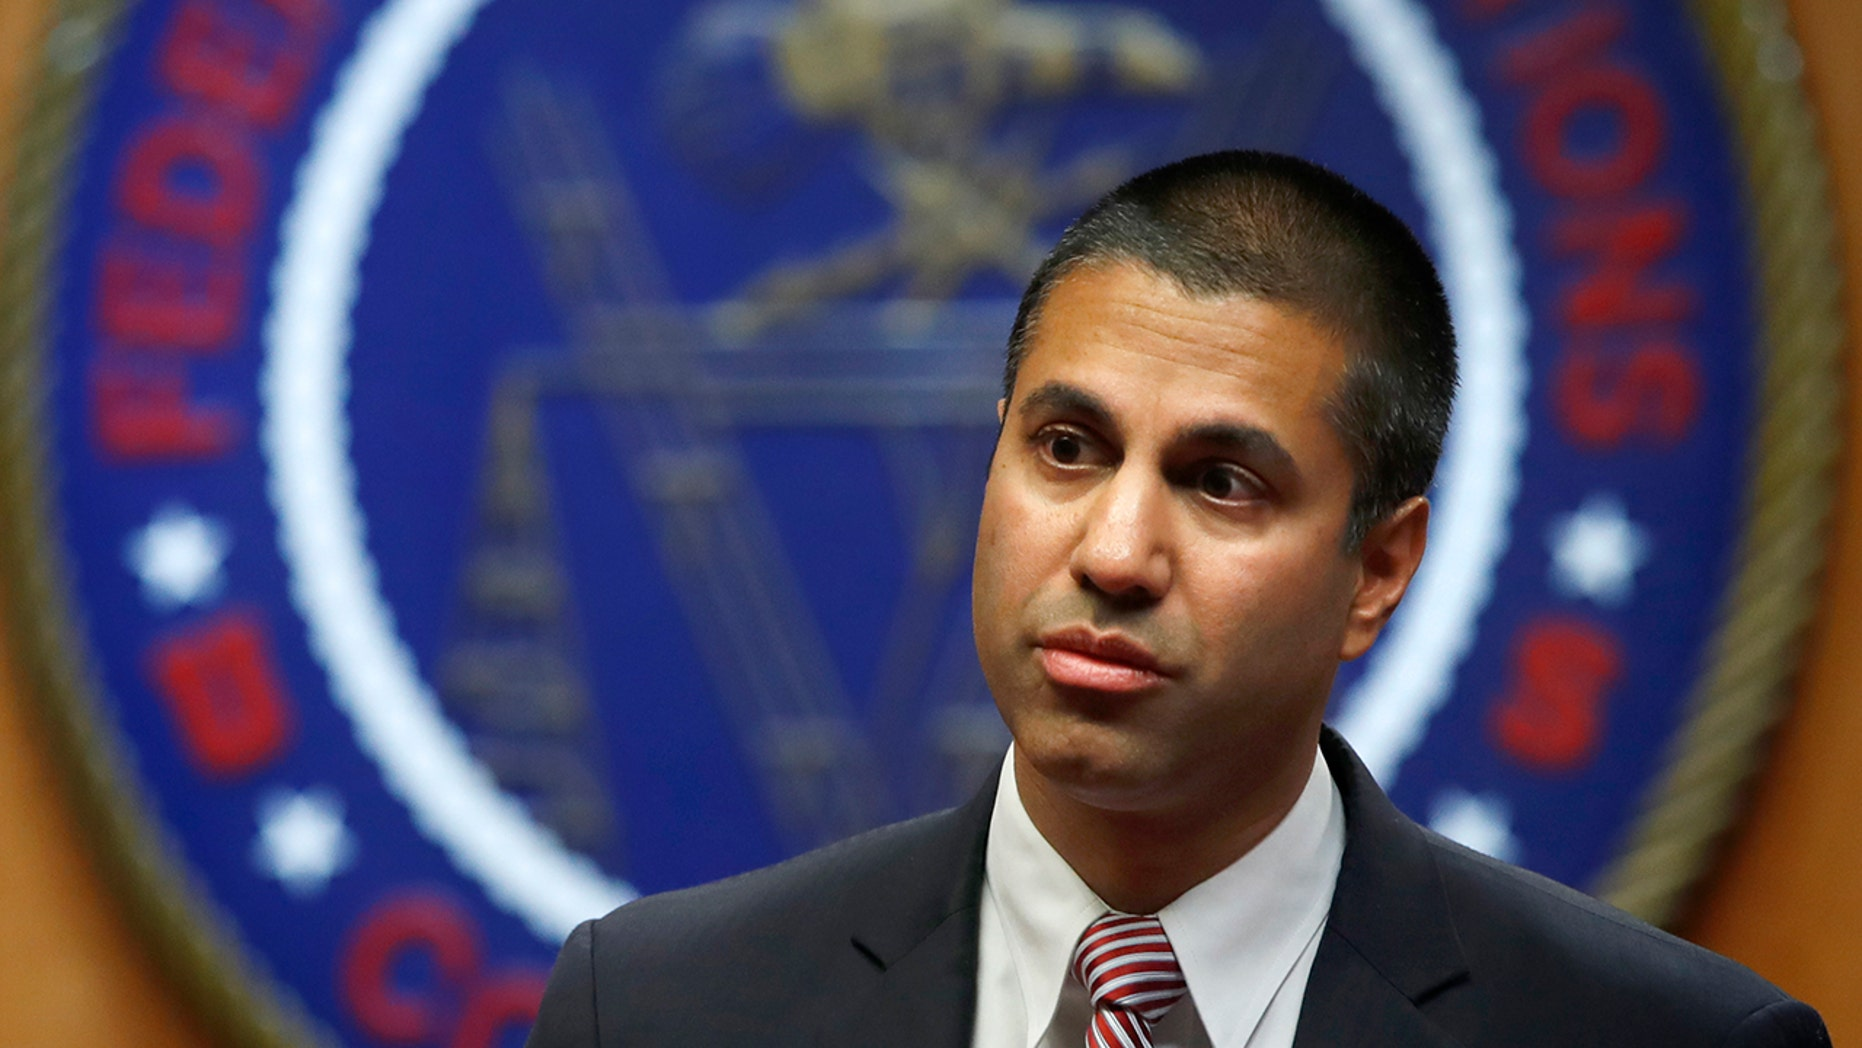 FCC Chairman Ajit Pai reportedly canceled an appearance at a tech event over death threats.